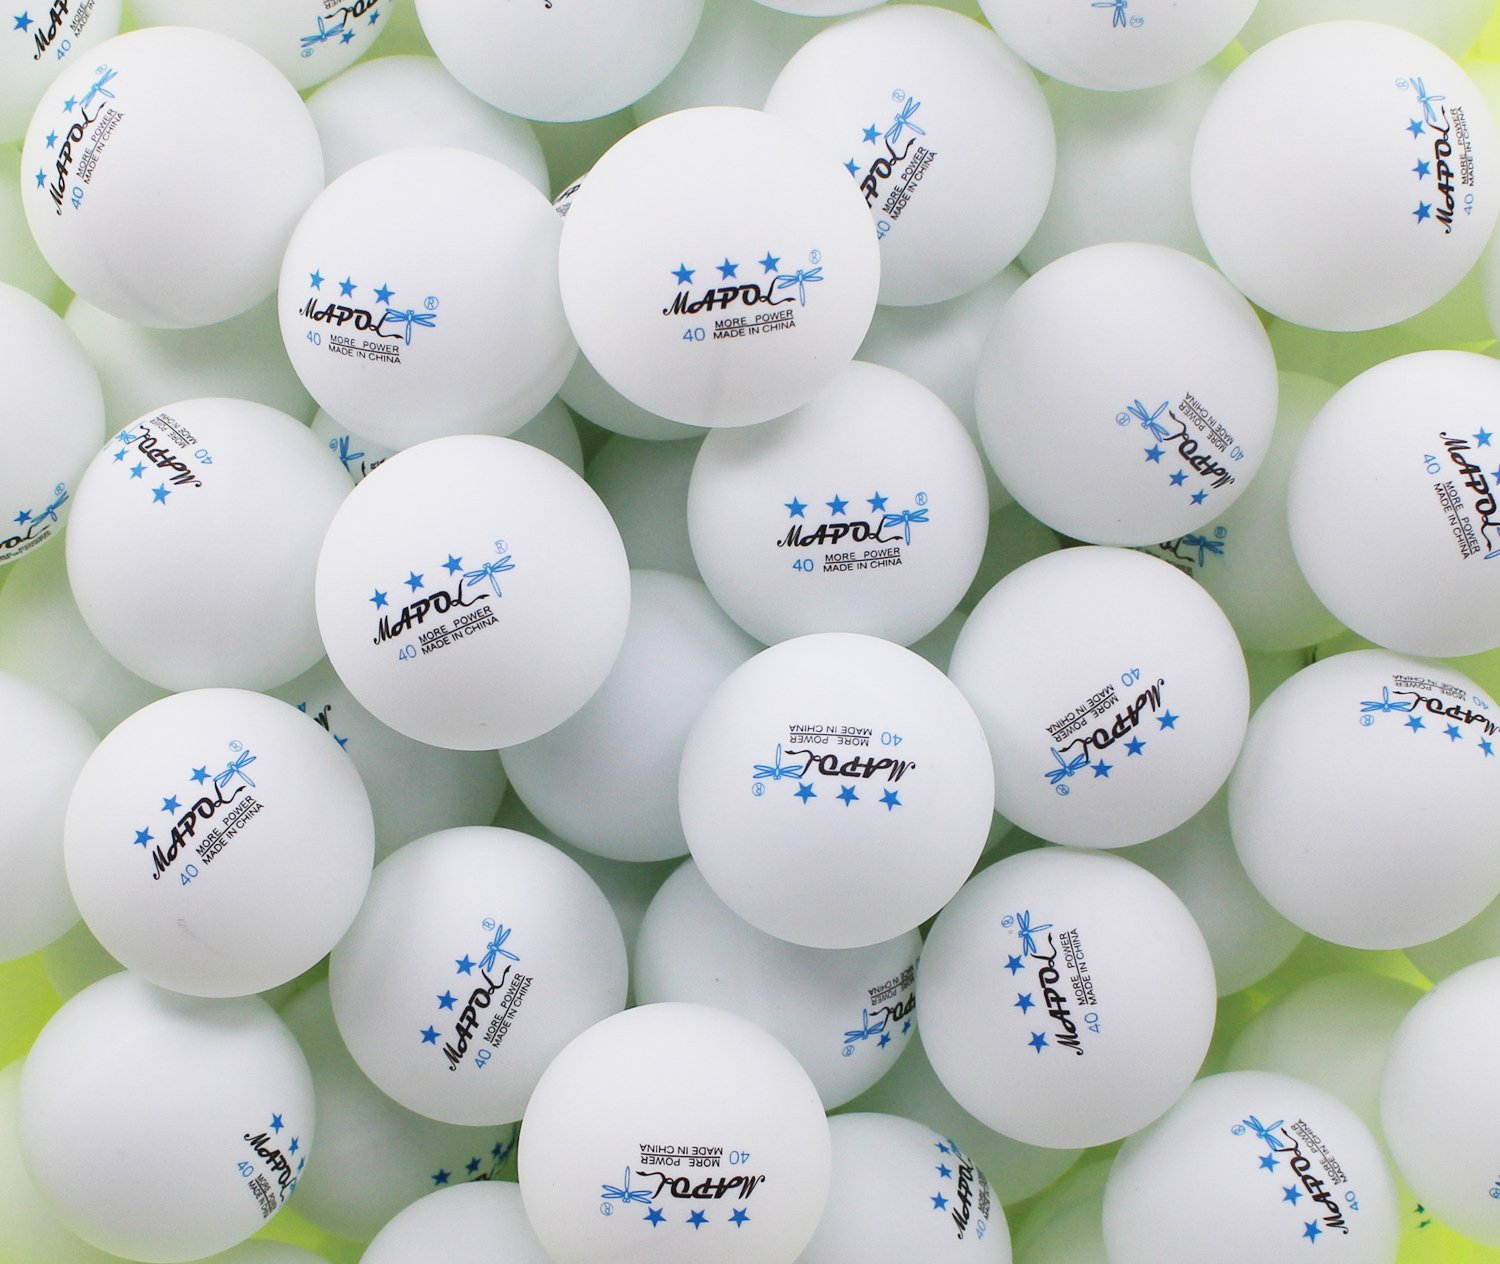 Galleon 100 white 3 star 40mm table tennis balls for 100 table tennis balls